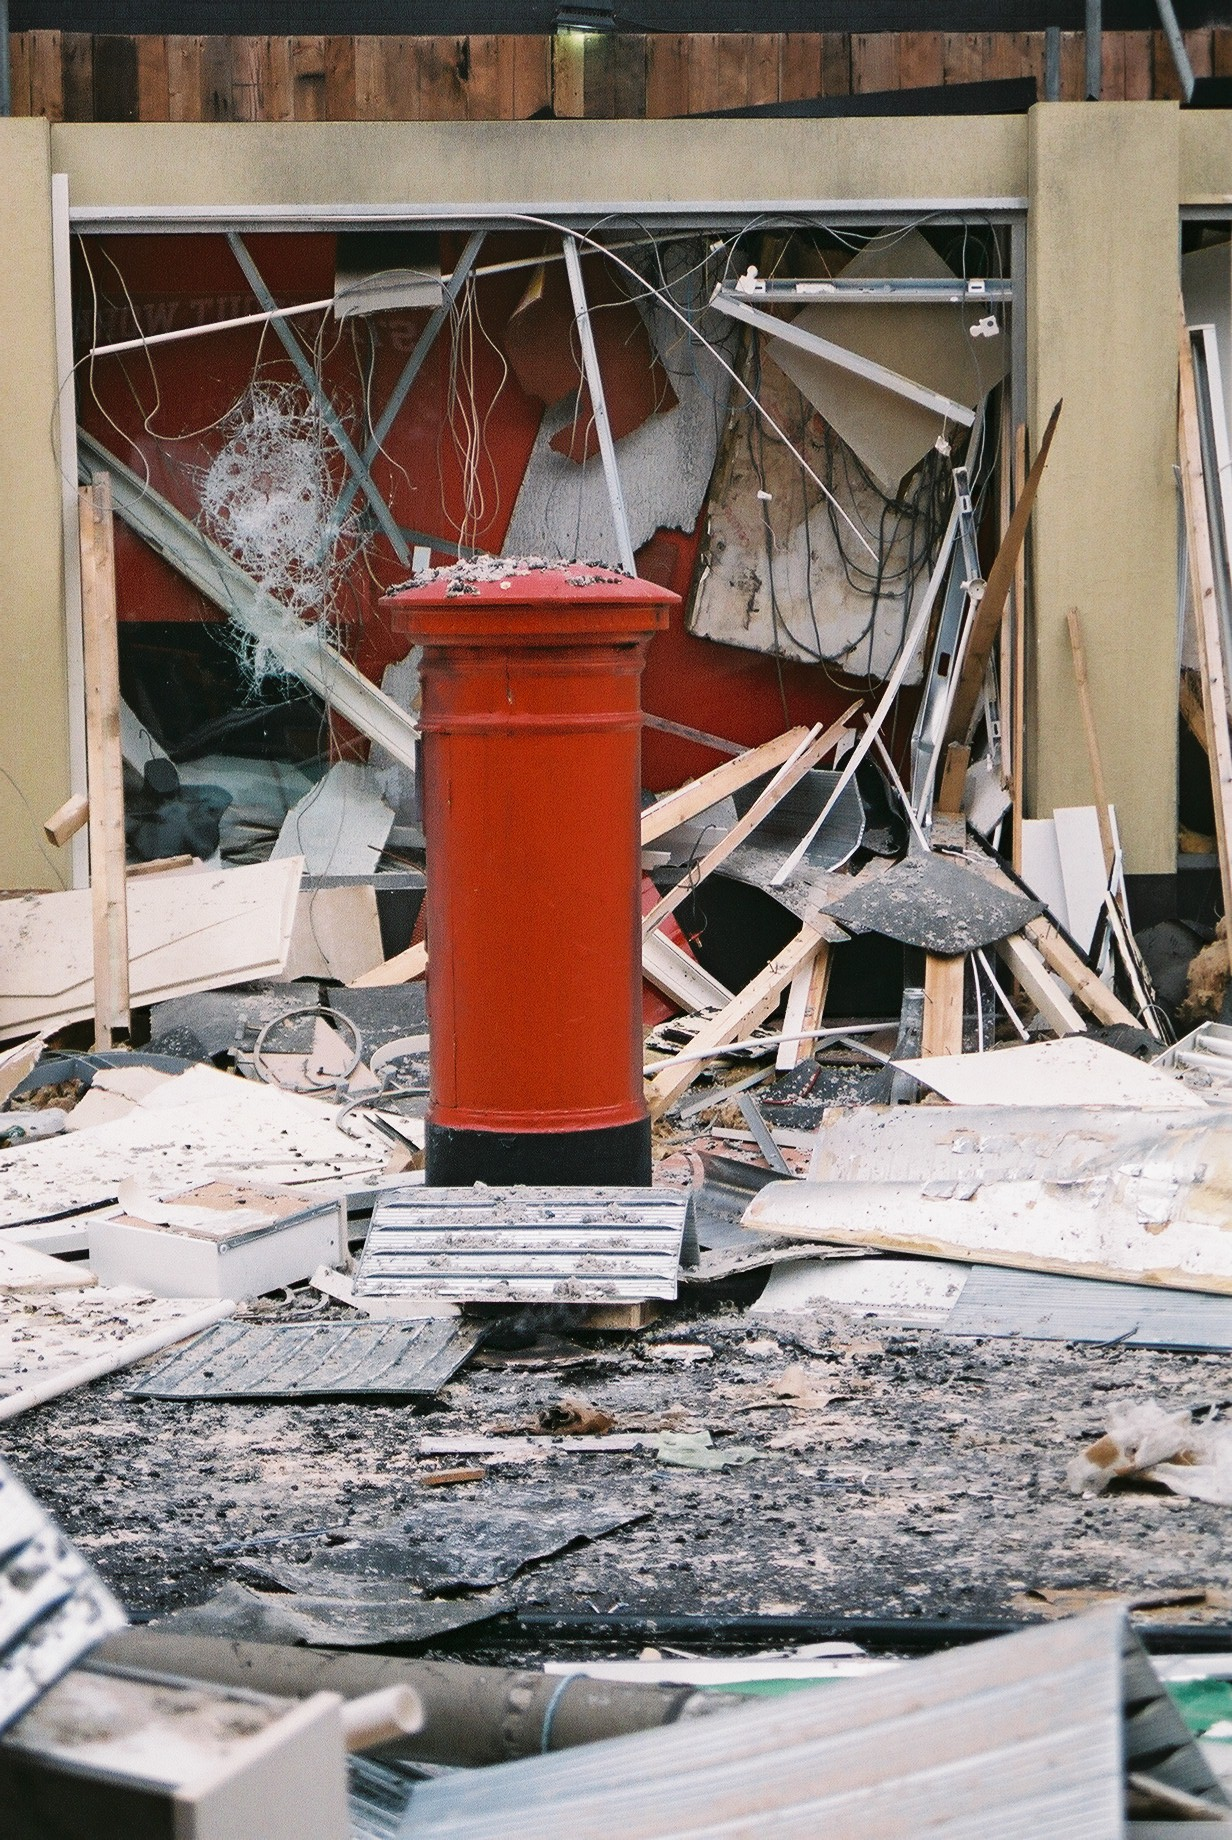 A recreation of the post box that survived the bomb